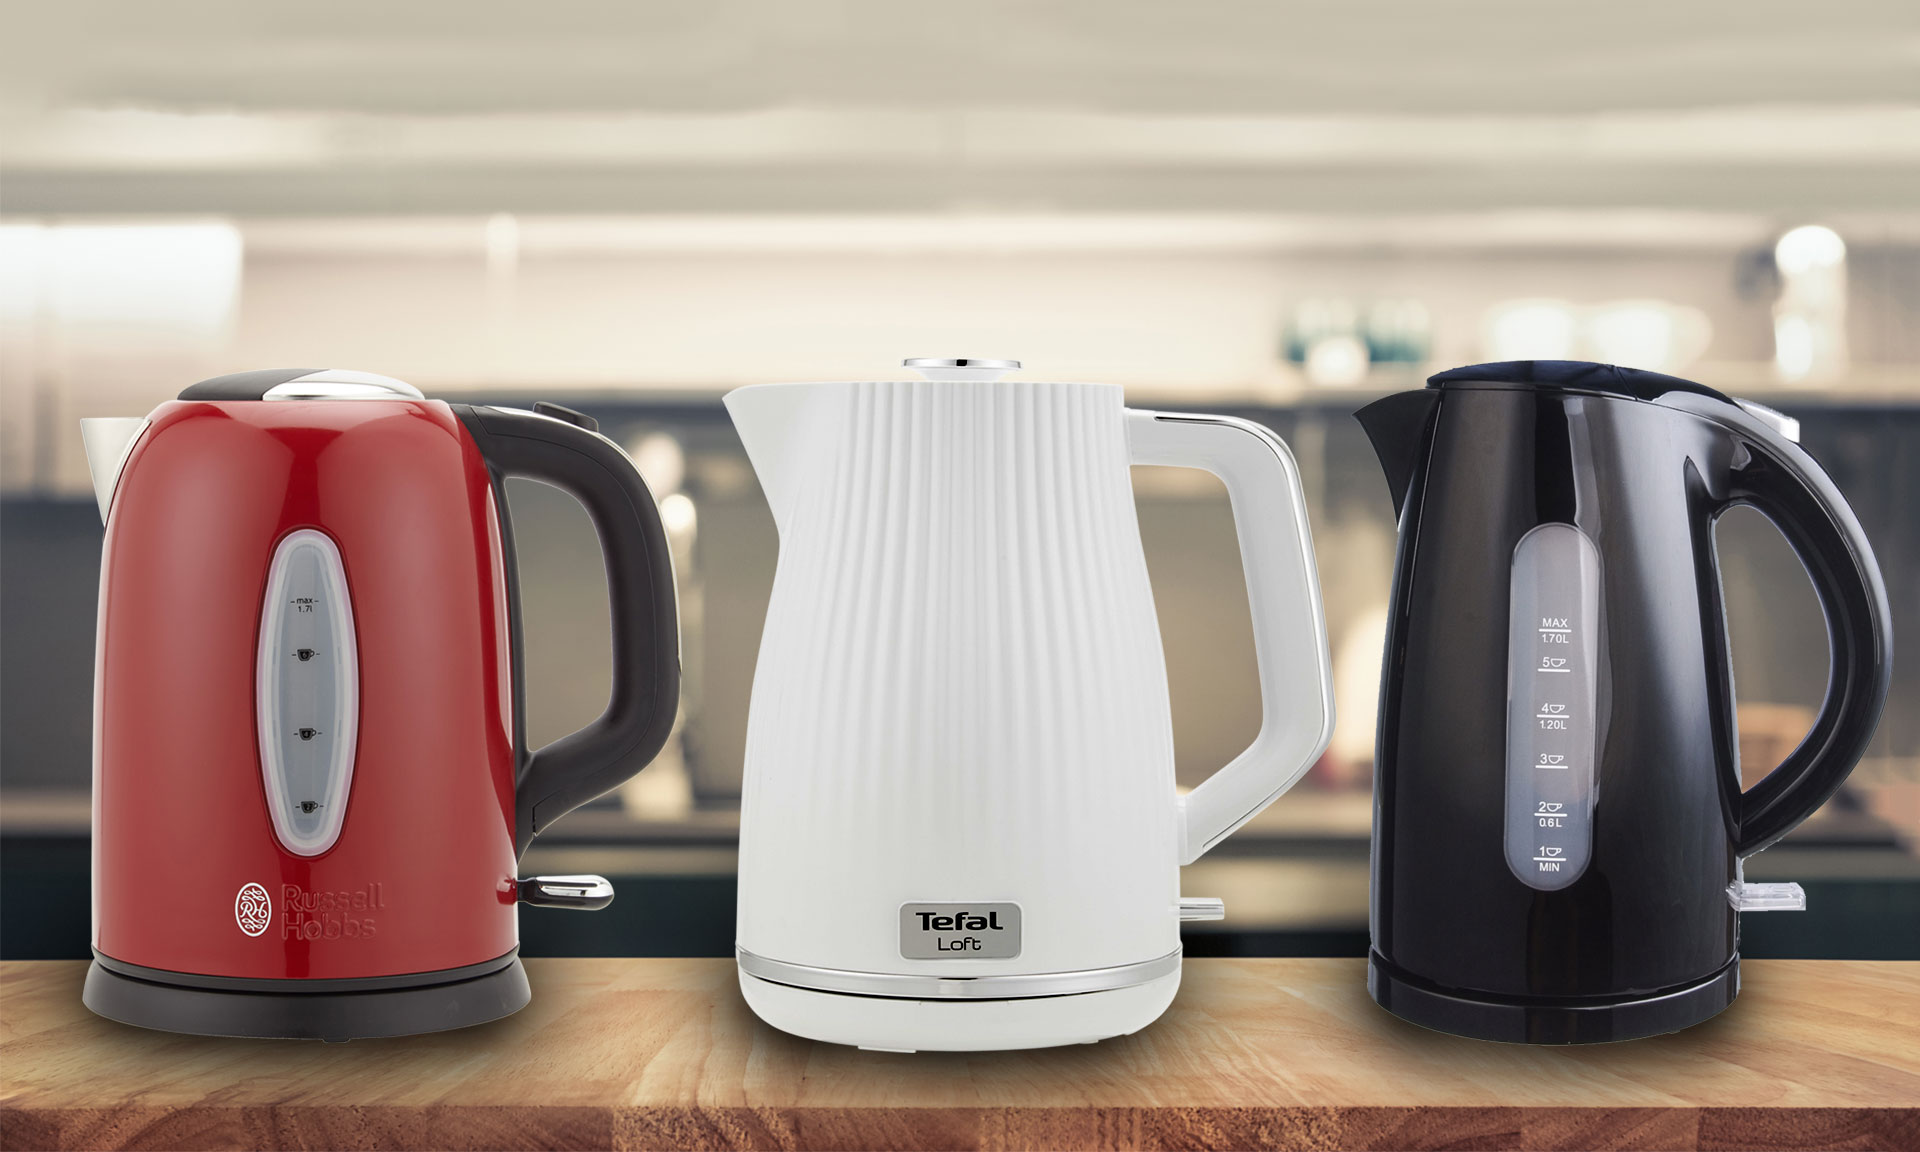 cheap best buy kettles revealedwhich? tests – which